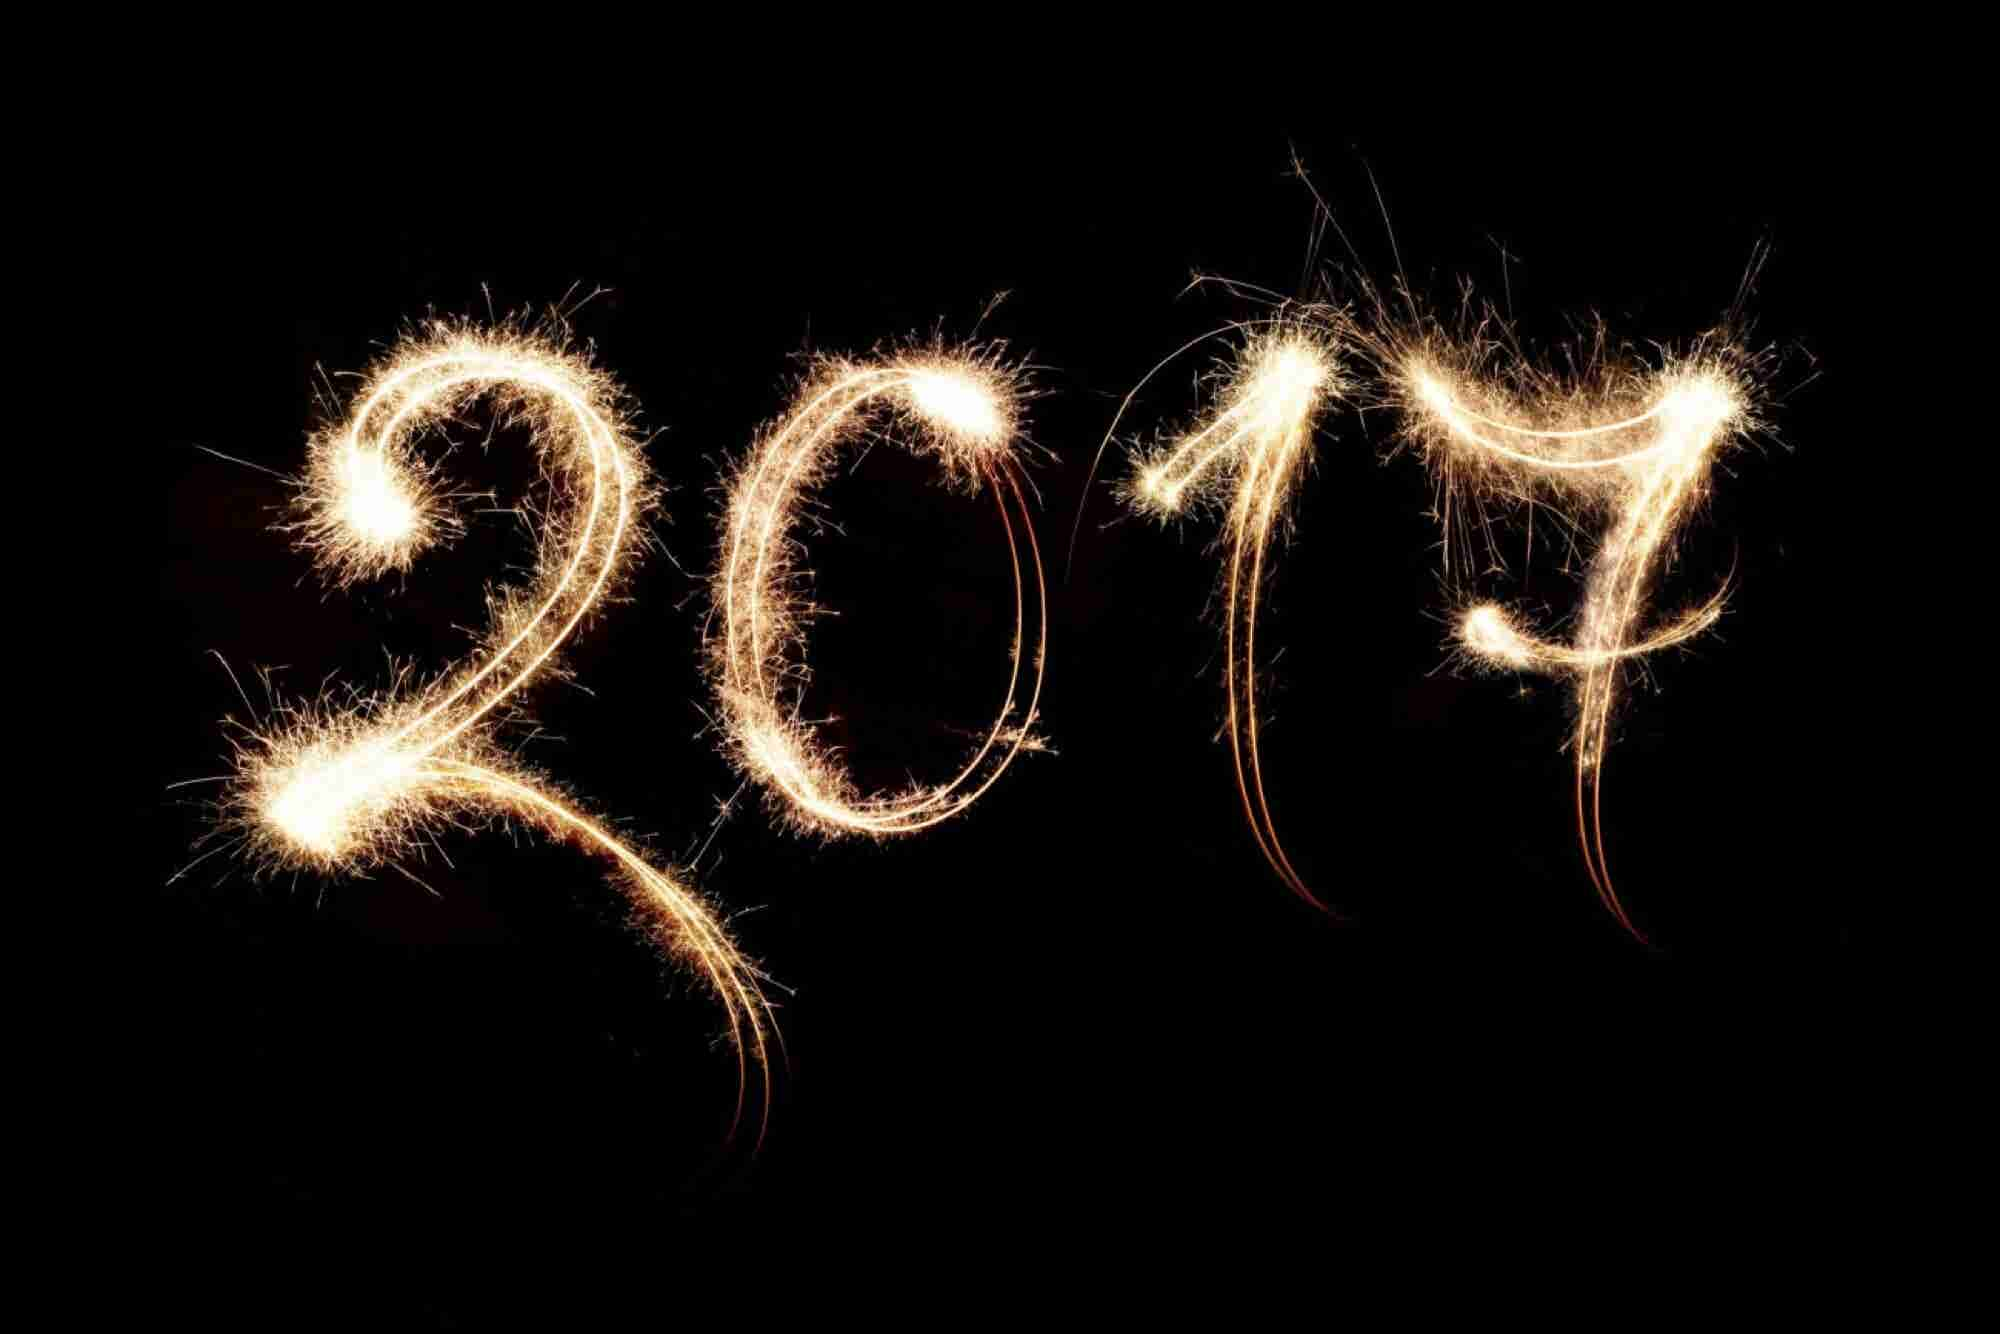 7 New Year's Resolutions to Make 2017 Great